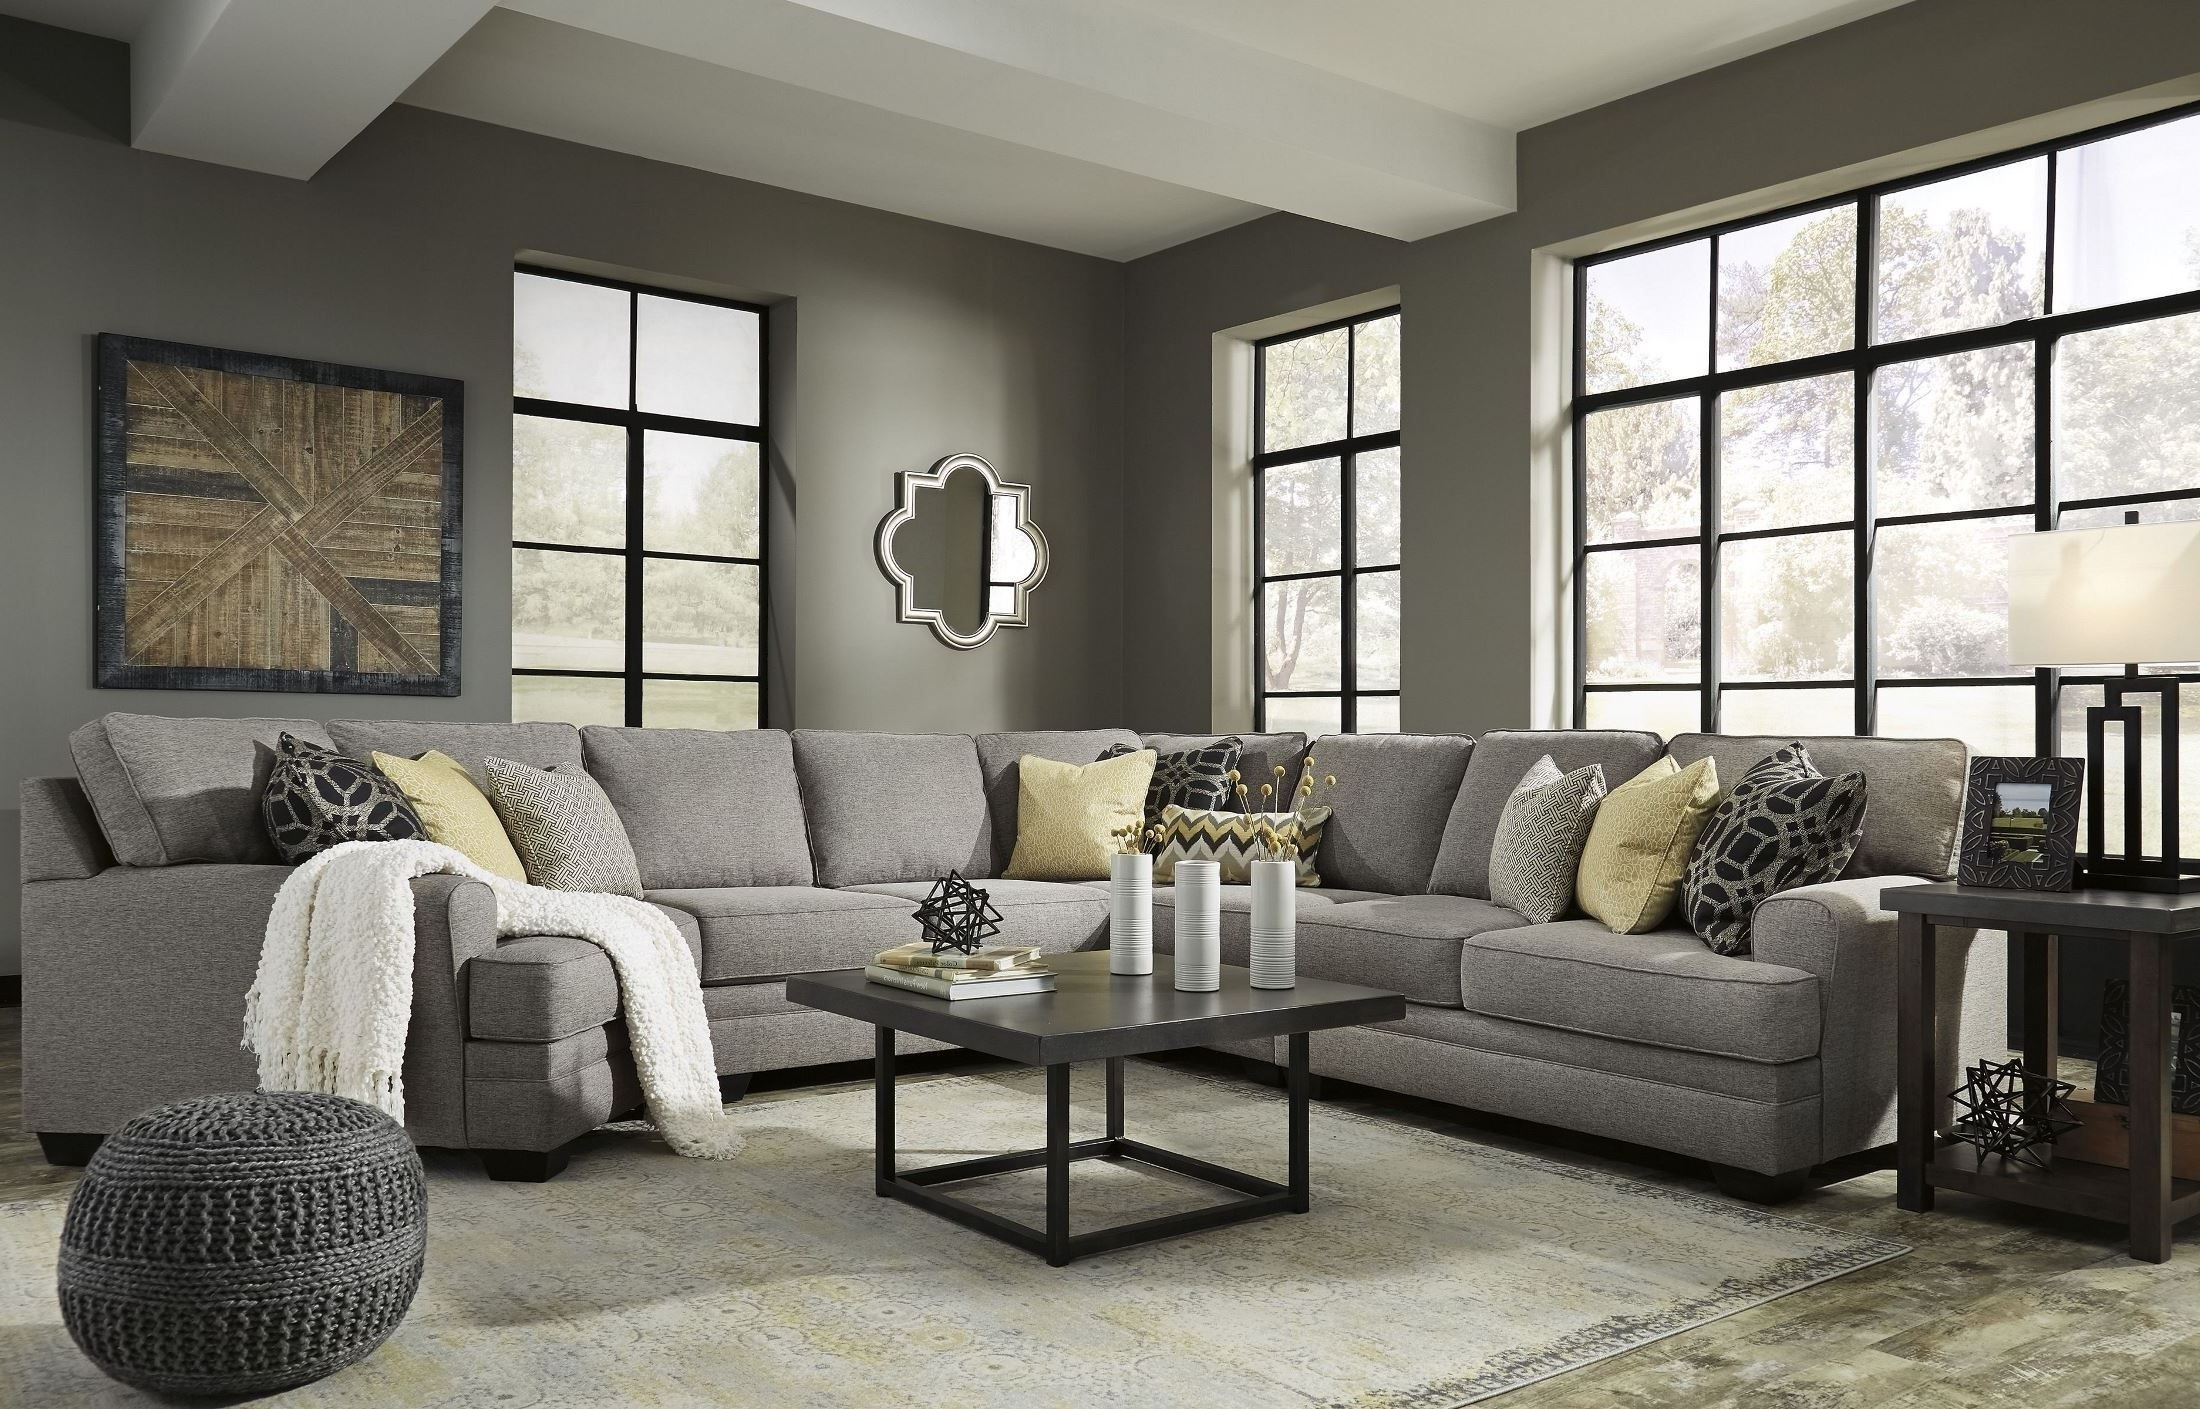 Cresson Pewter Laf Cuddler Sectional From Ashley | Coleman Furniture With Regard To Aspen 2 Piece Sleeper Sectionals With Raf Chaise (View 13 of 25)